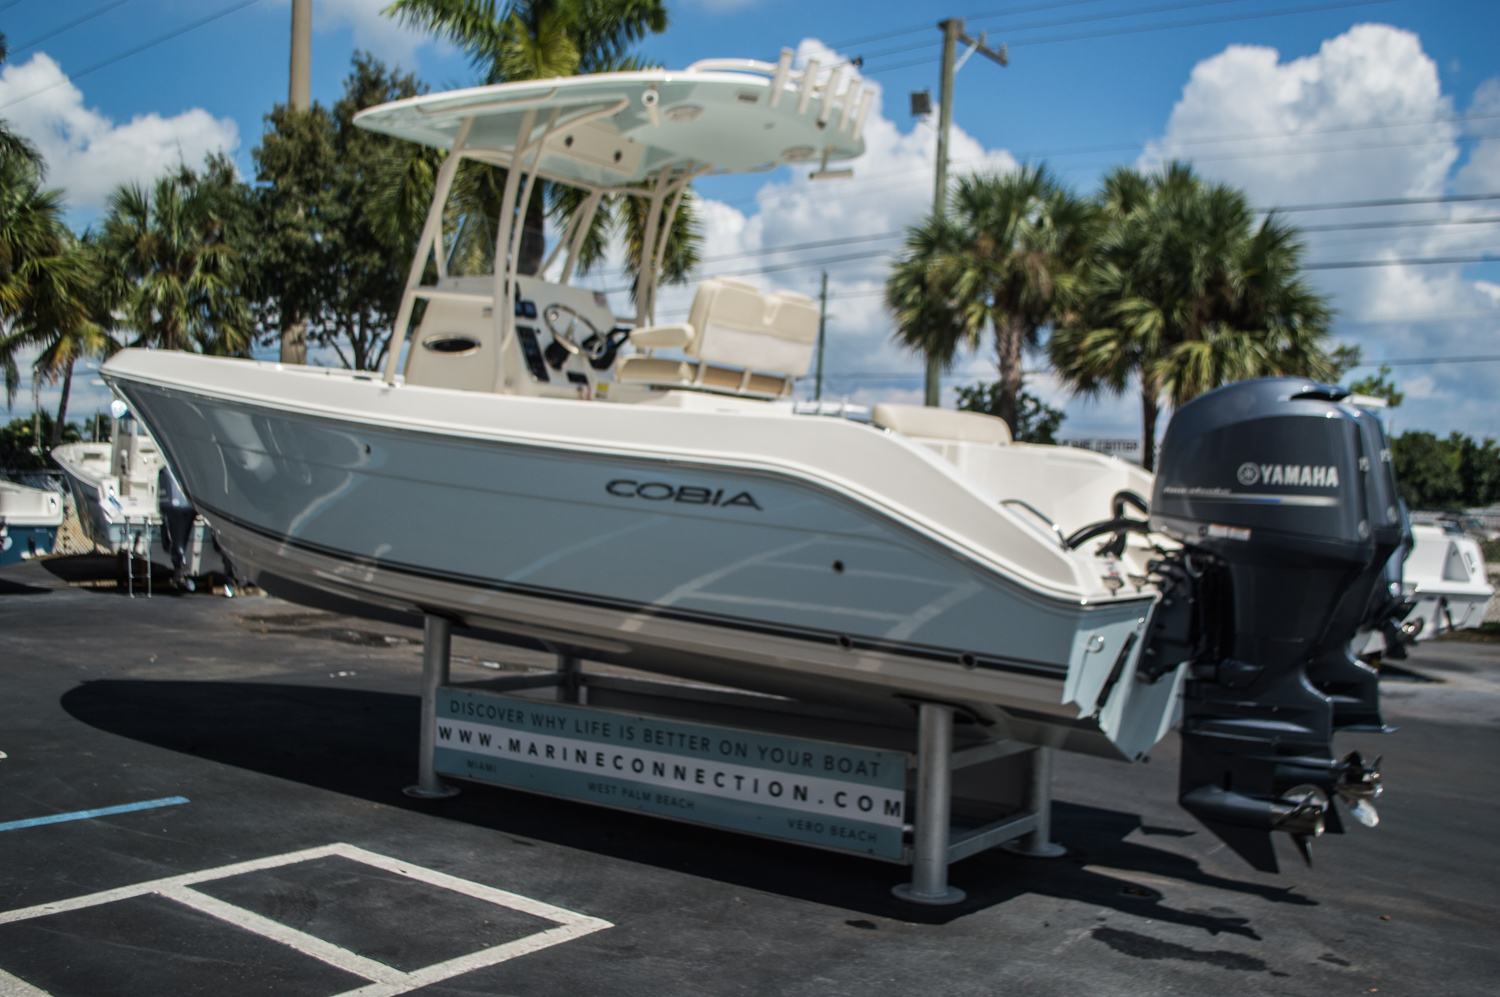 Thumbnail 5 for New 2015 Cobia 256 Center Console boat for sale in West Palm Beach, FL